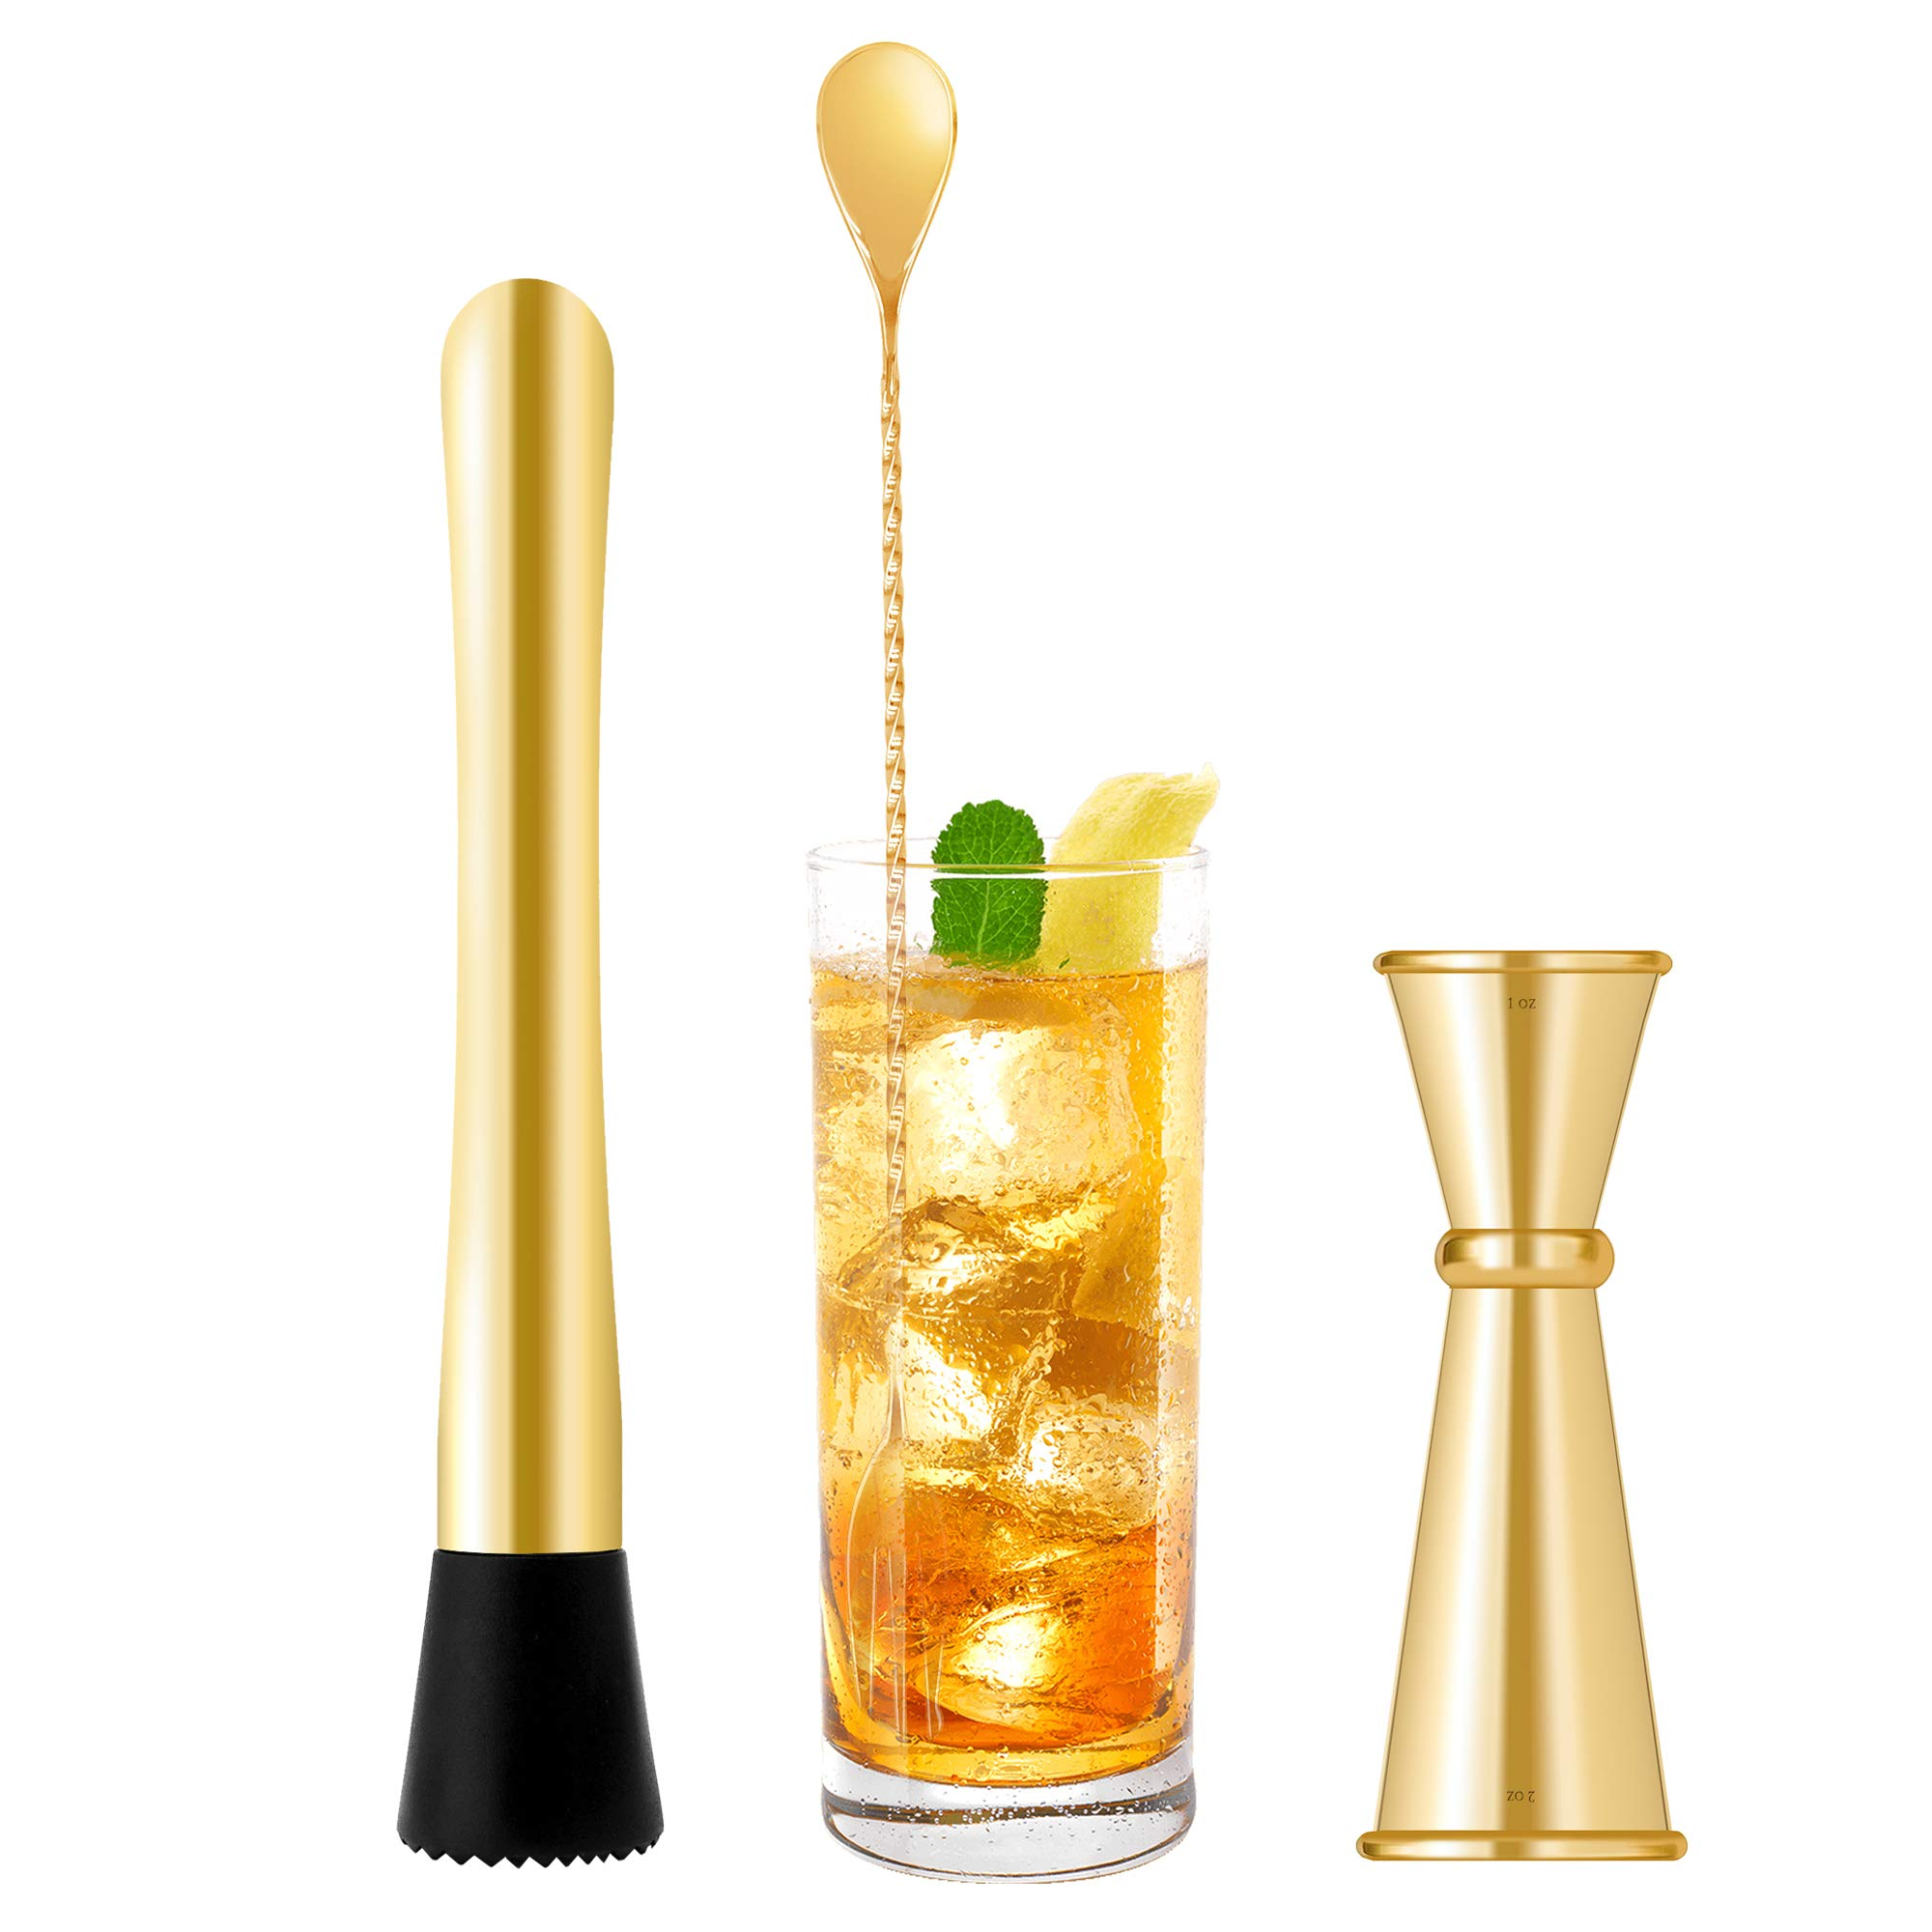 Homestia 3 PIECE Muddler Set Stainless Steel Cocktail Muddler with Double Jigger, Bar Spoon Mojito Bar Tool Gold